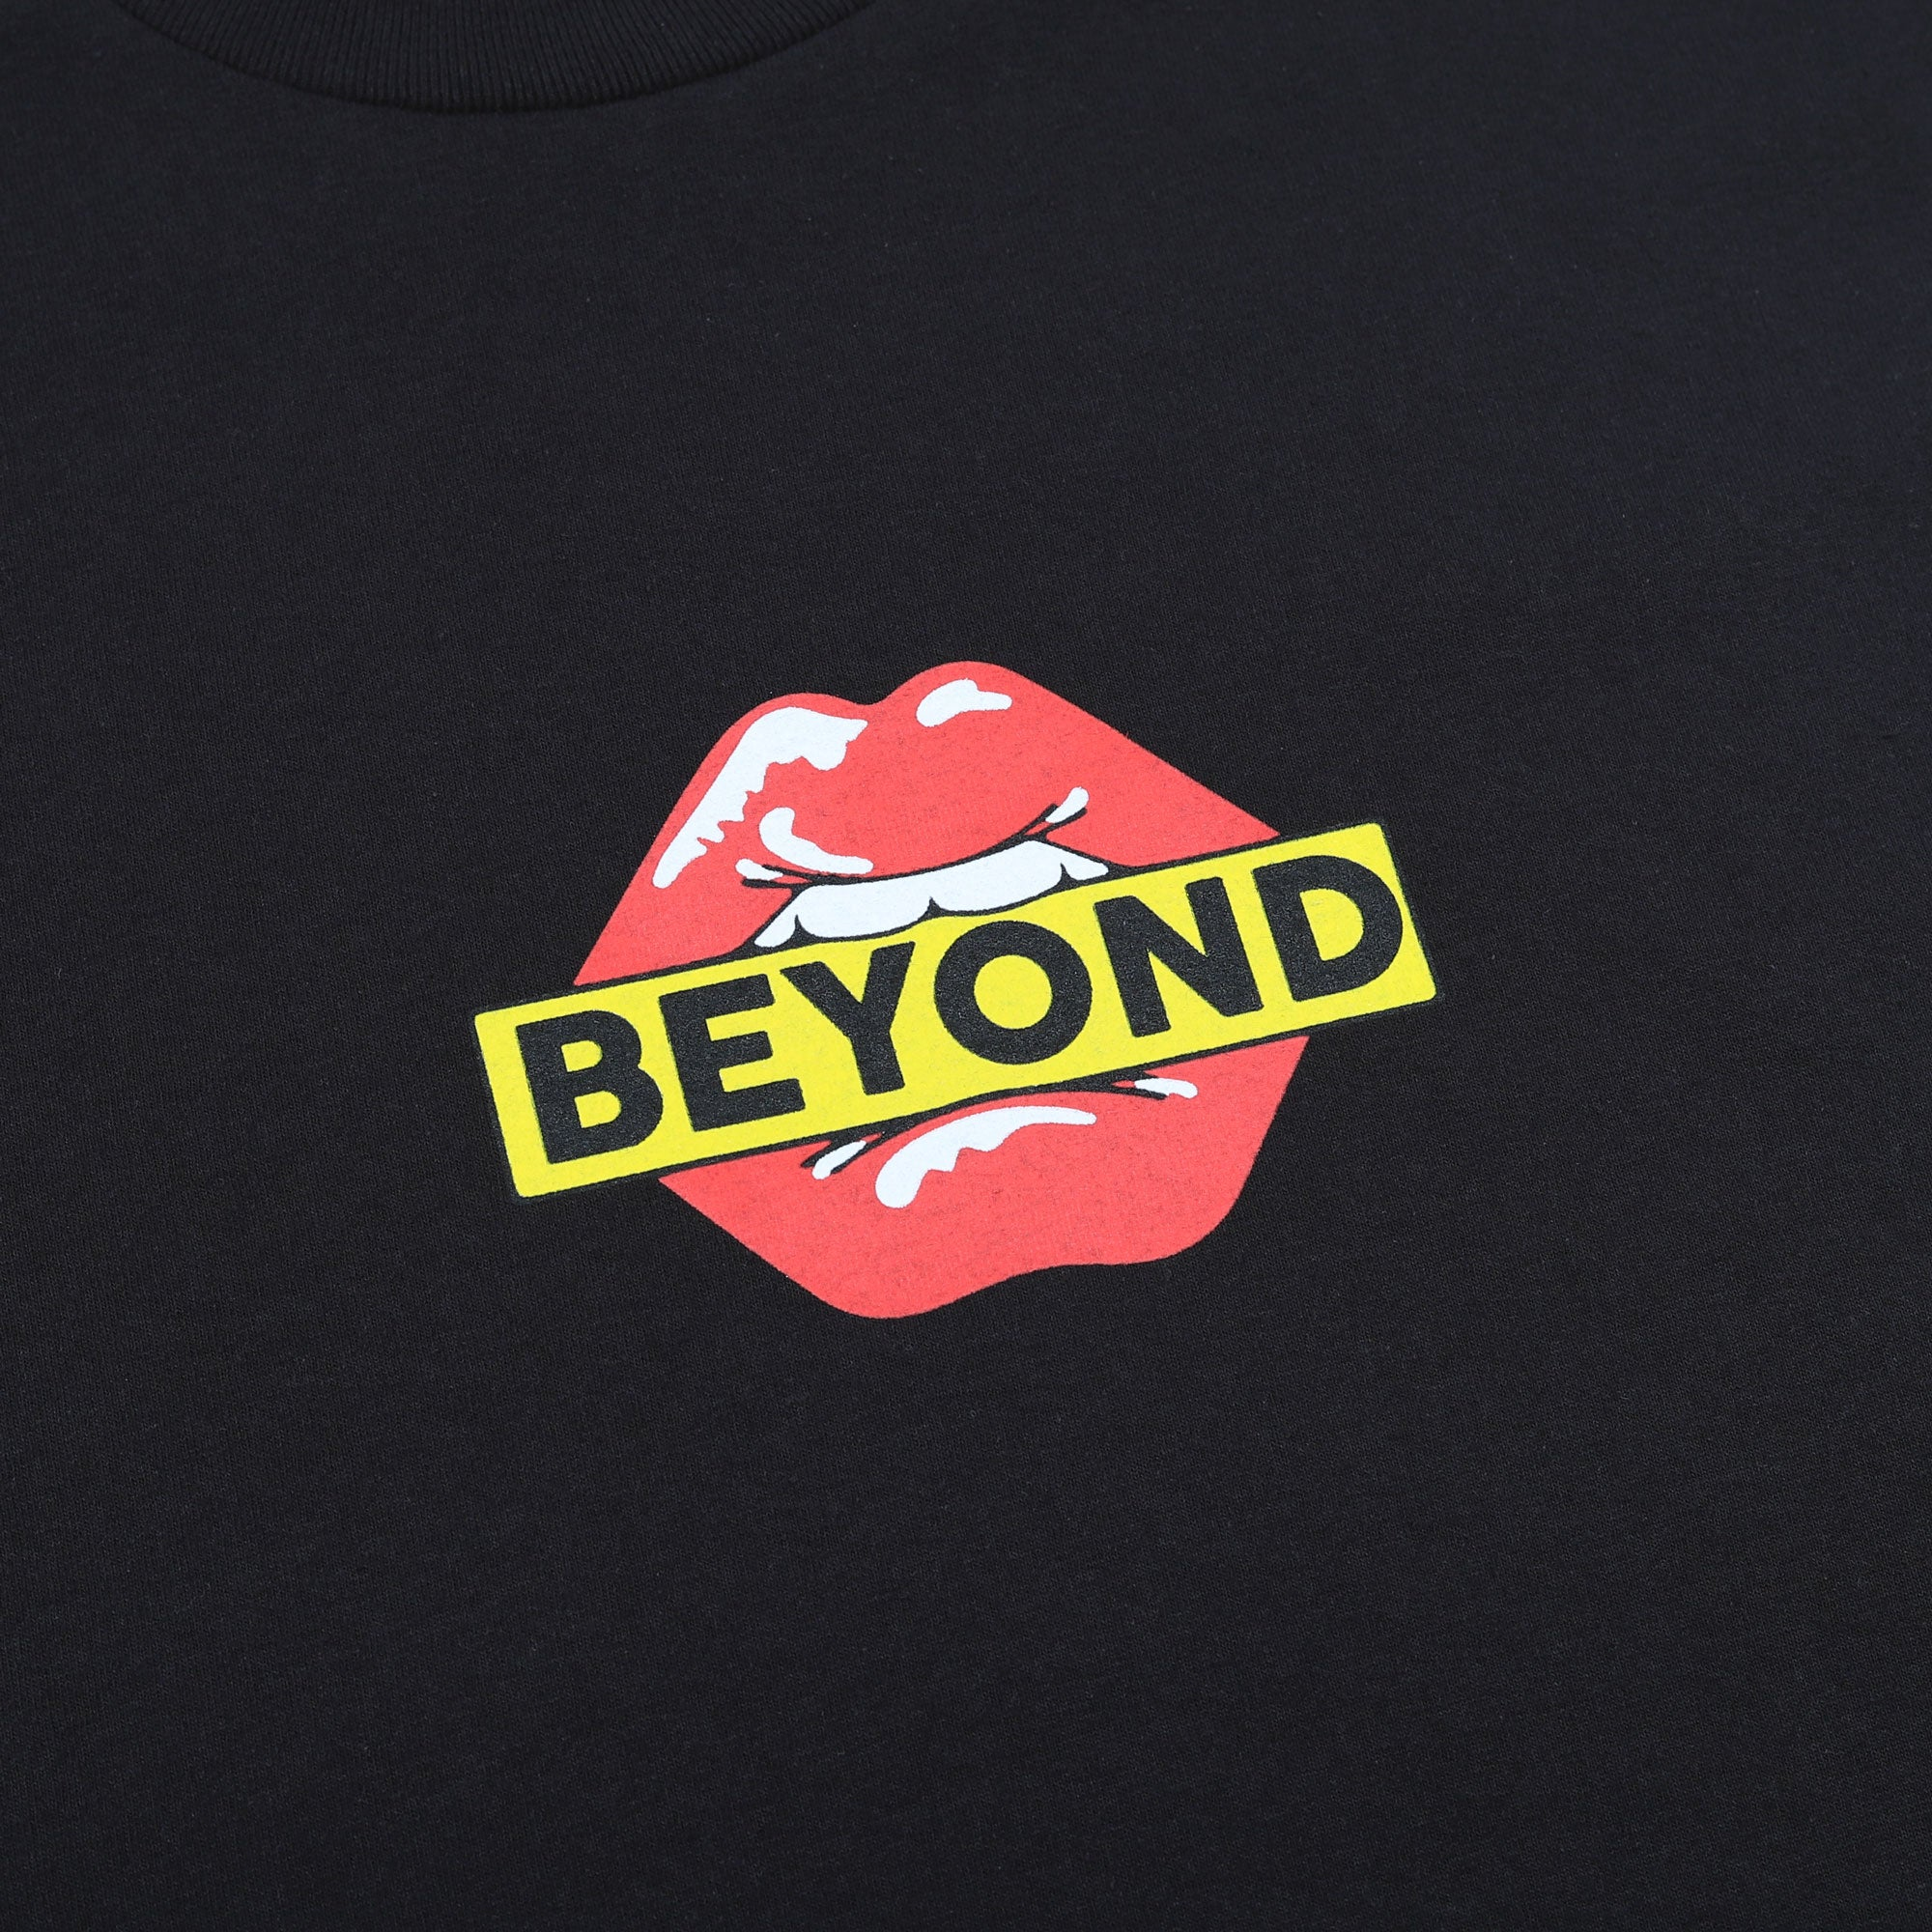 Beyond Beyorucci Tee Product Photo #2